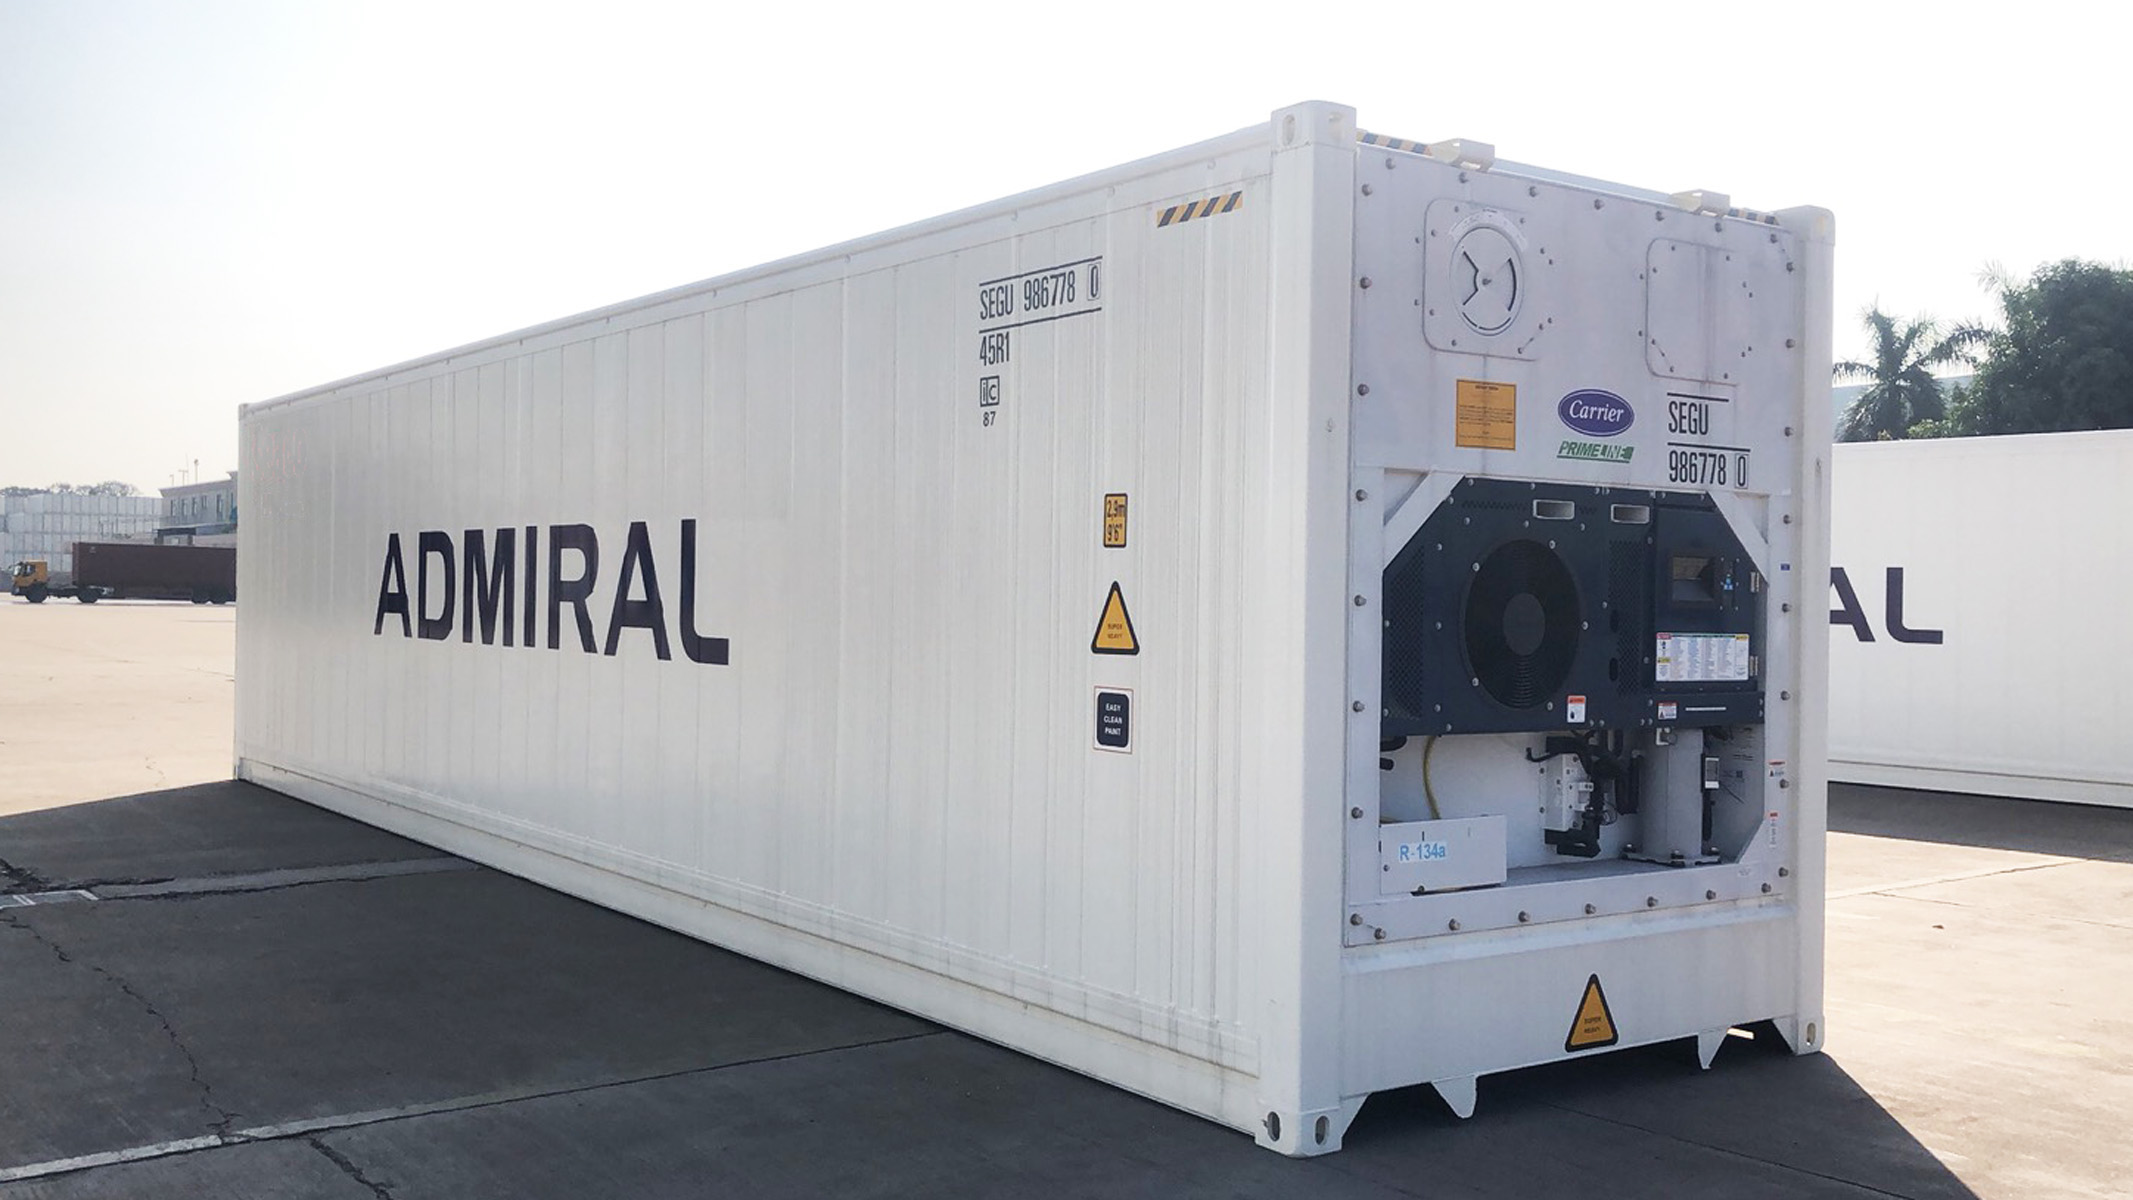 Admiral Container Lines adds reefers